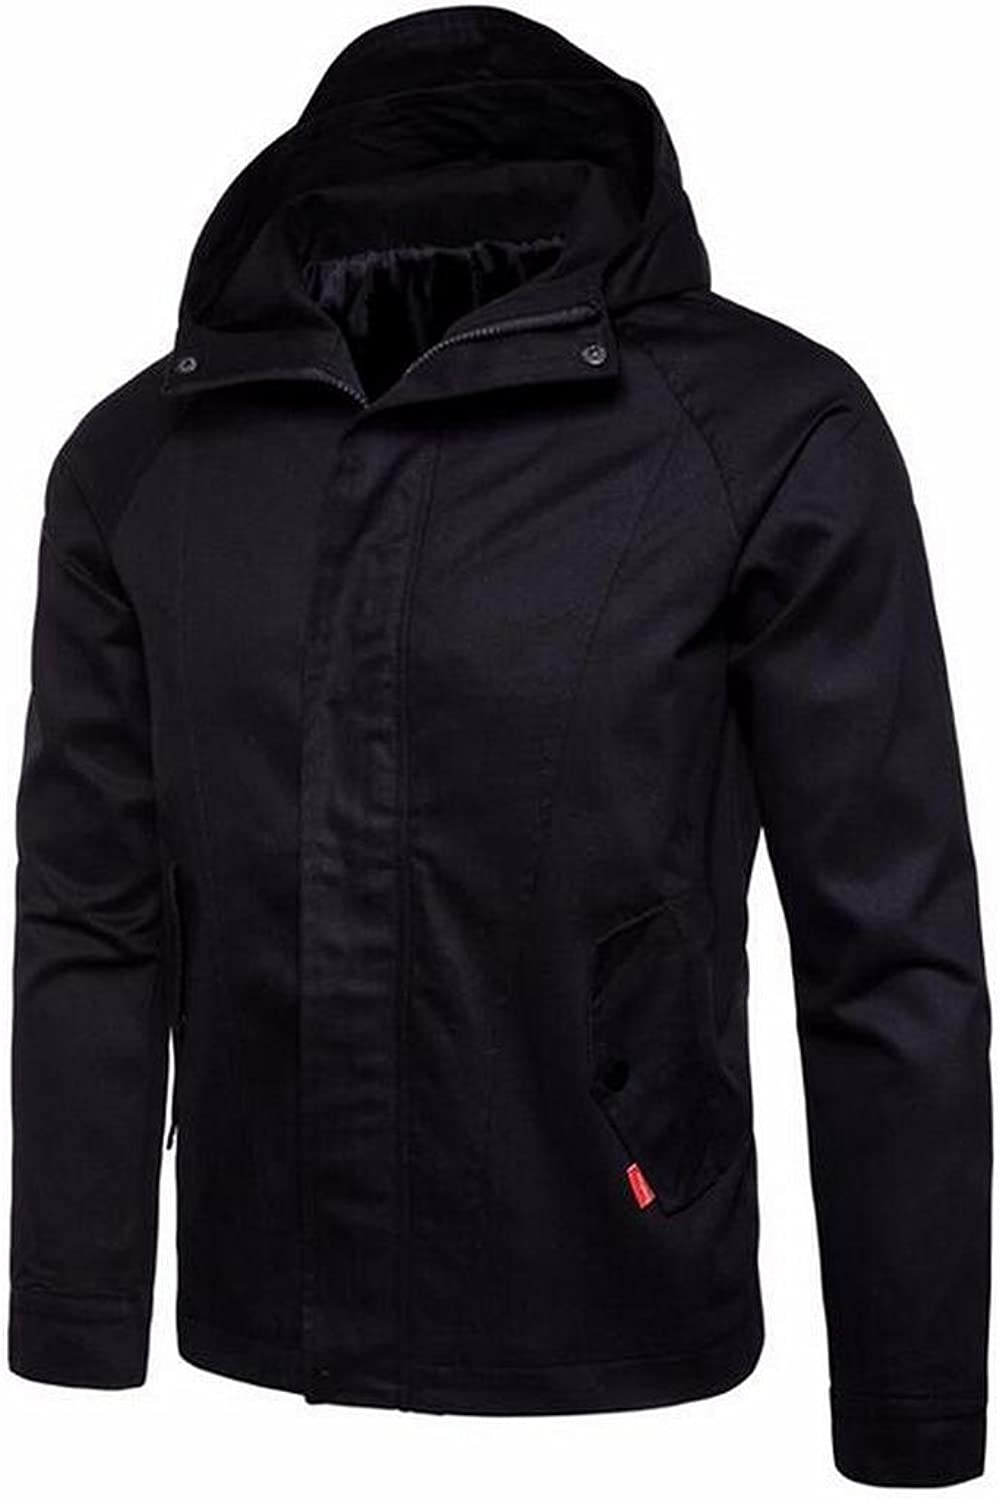 0b516544a0 LD Mens Casual Zipper Hooded Windbreaker Jackets Trench Trench Trench Coat  Outwear c4bbb5